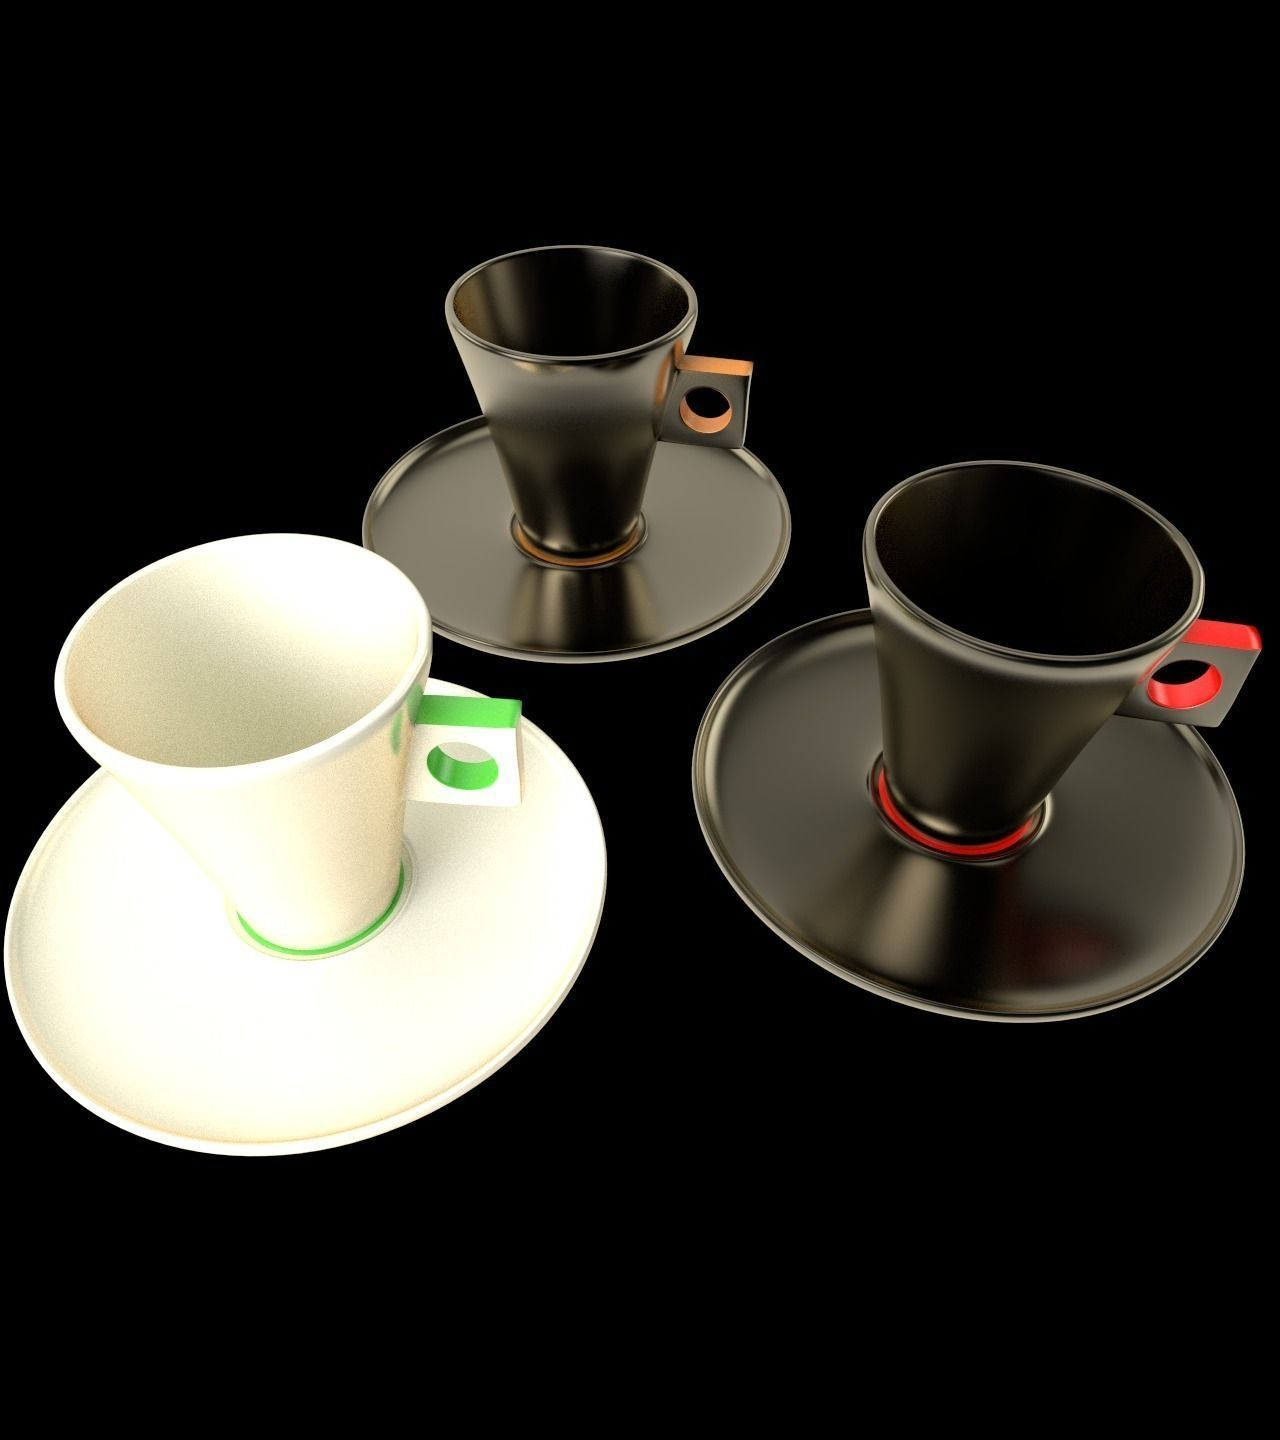 3D Nescafe Capuccino cups with saucers | CGTrader